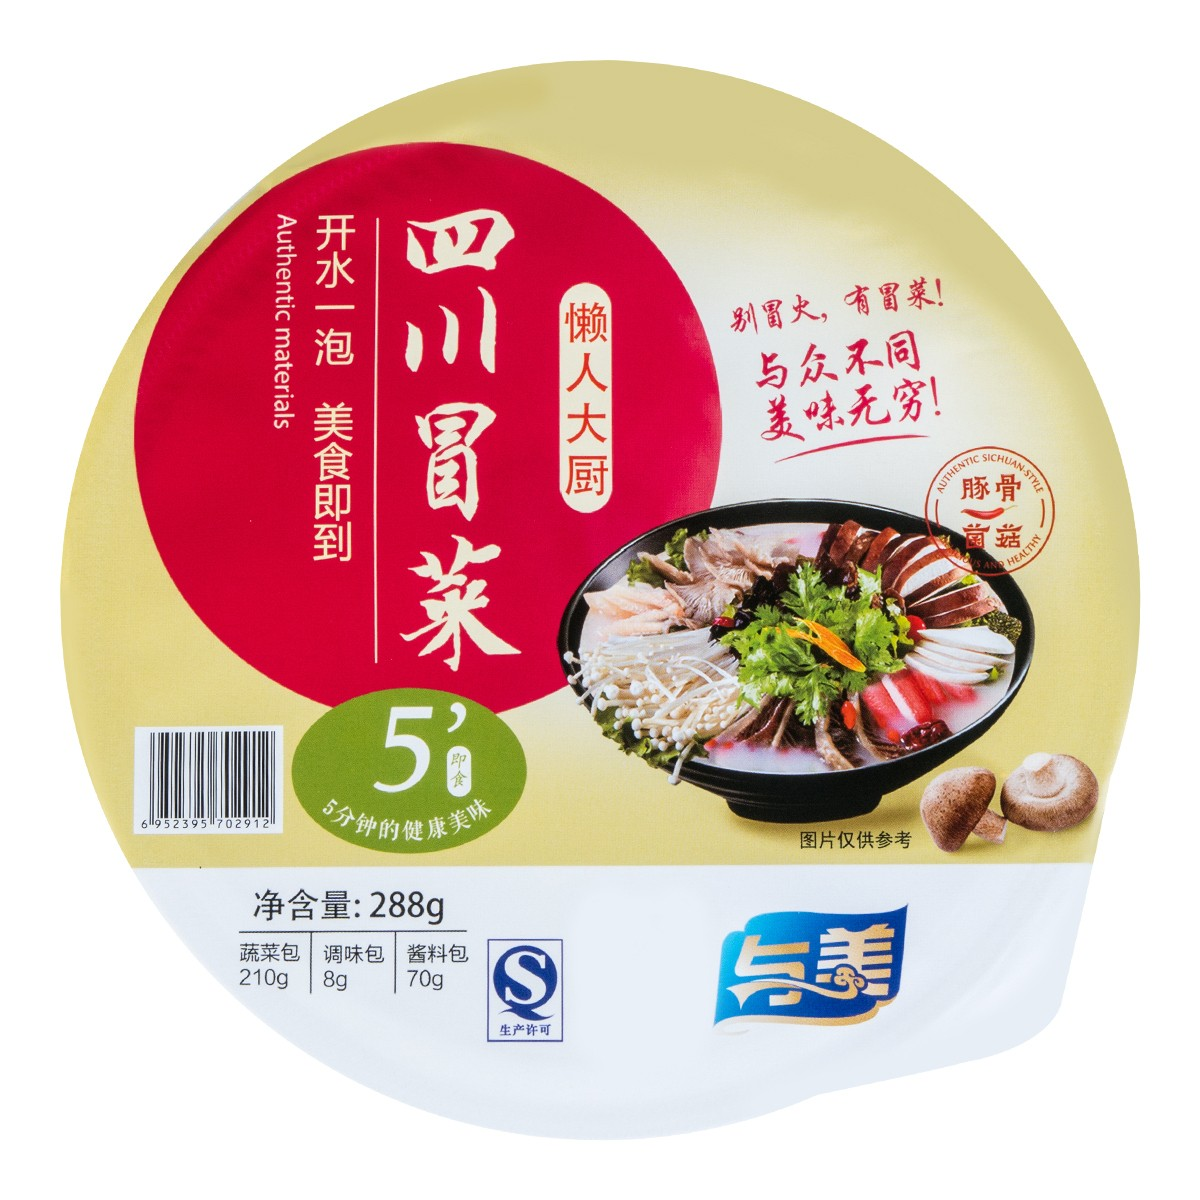 Yamibuy.com:Customer reviews:YUMEI  Master Chief Sichuan Instant Hot-pot 288g